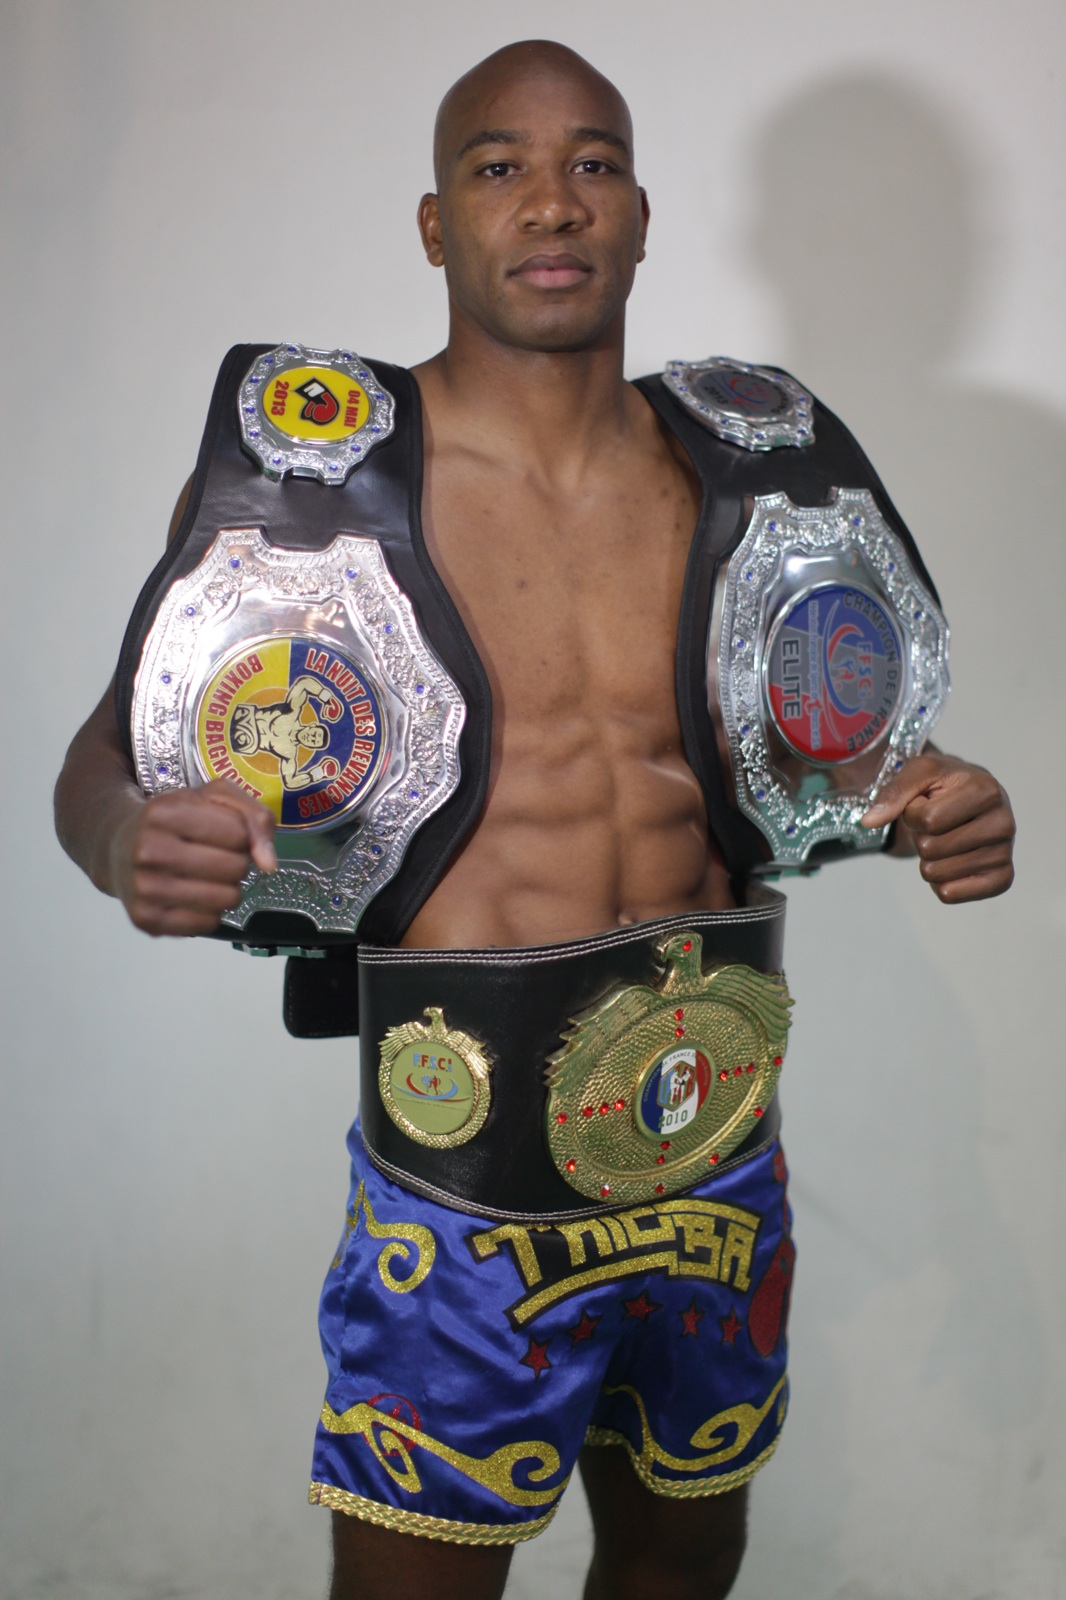 berthely-christian-71kg-kick-et-k1